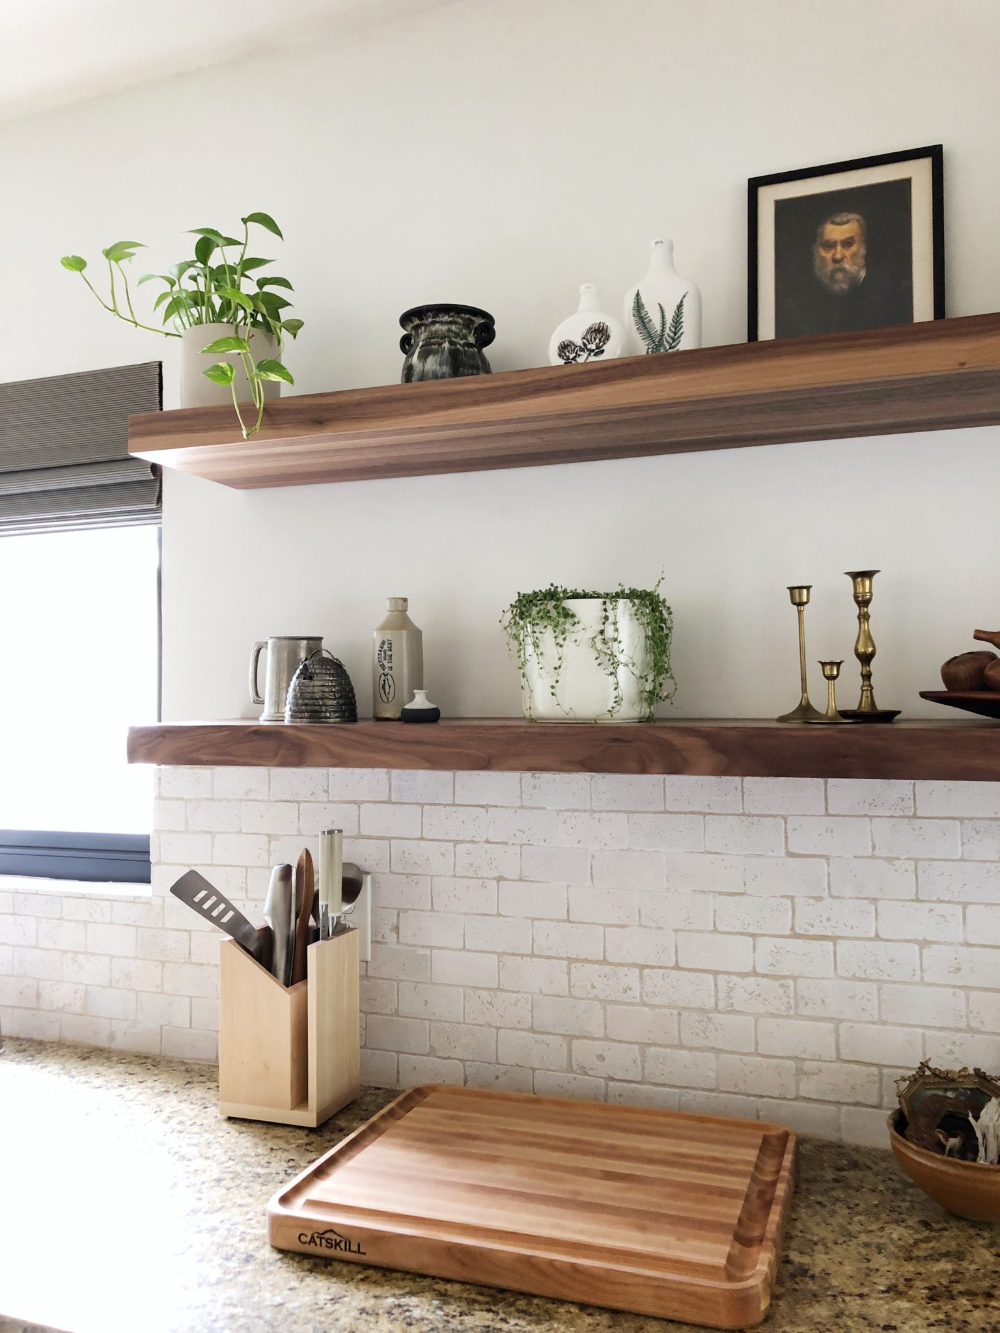 floating shelf in 2020 floating shelves kitchen floating shelves floating shelves diy on kitchen floating shelves id=46198